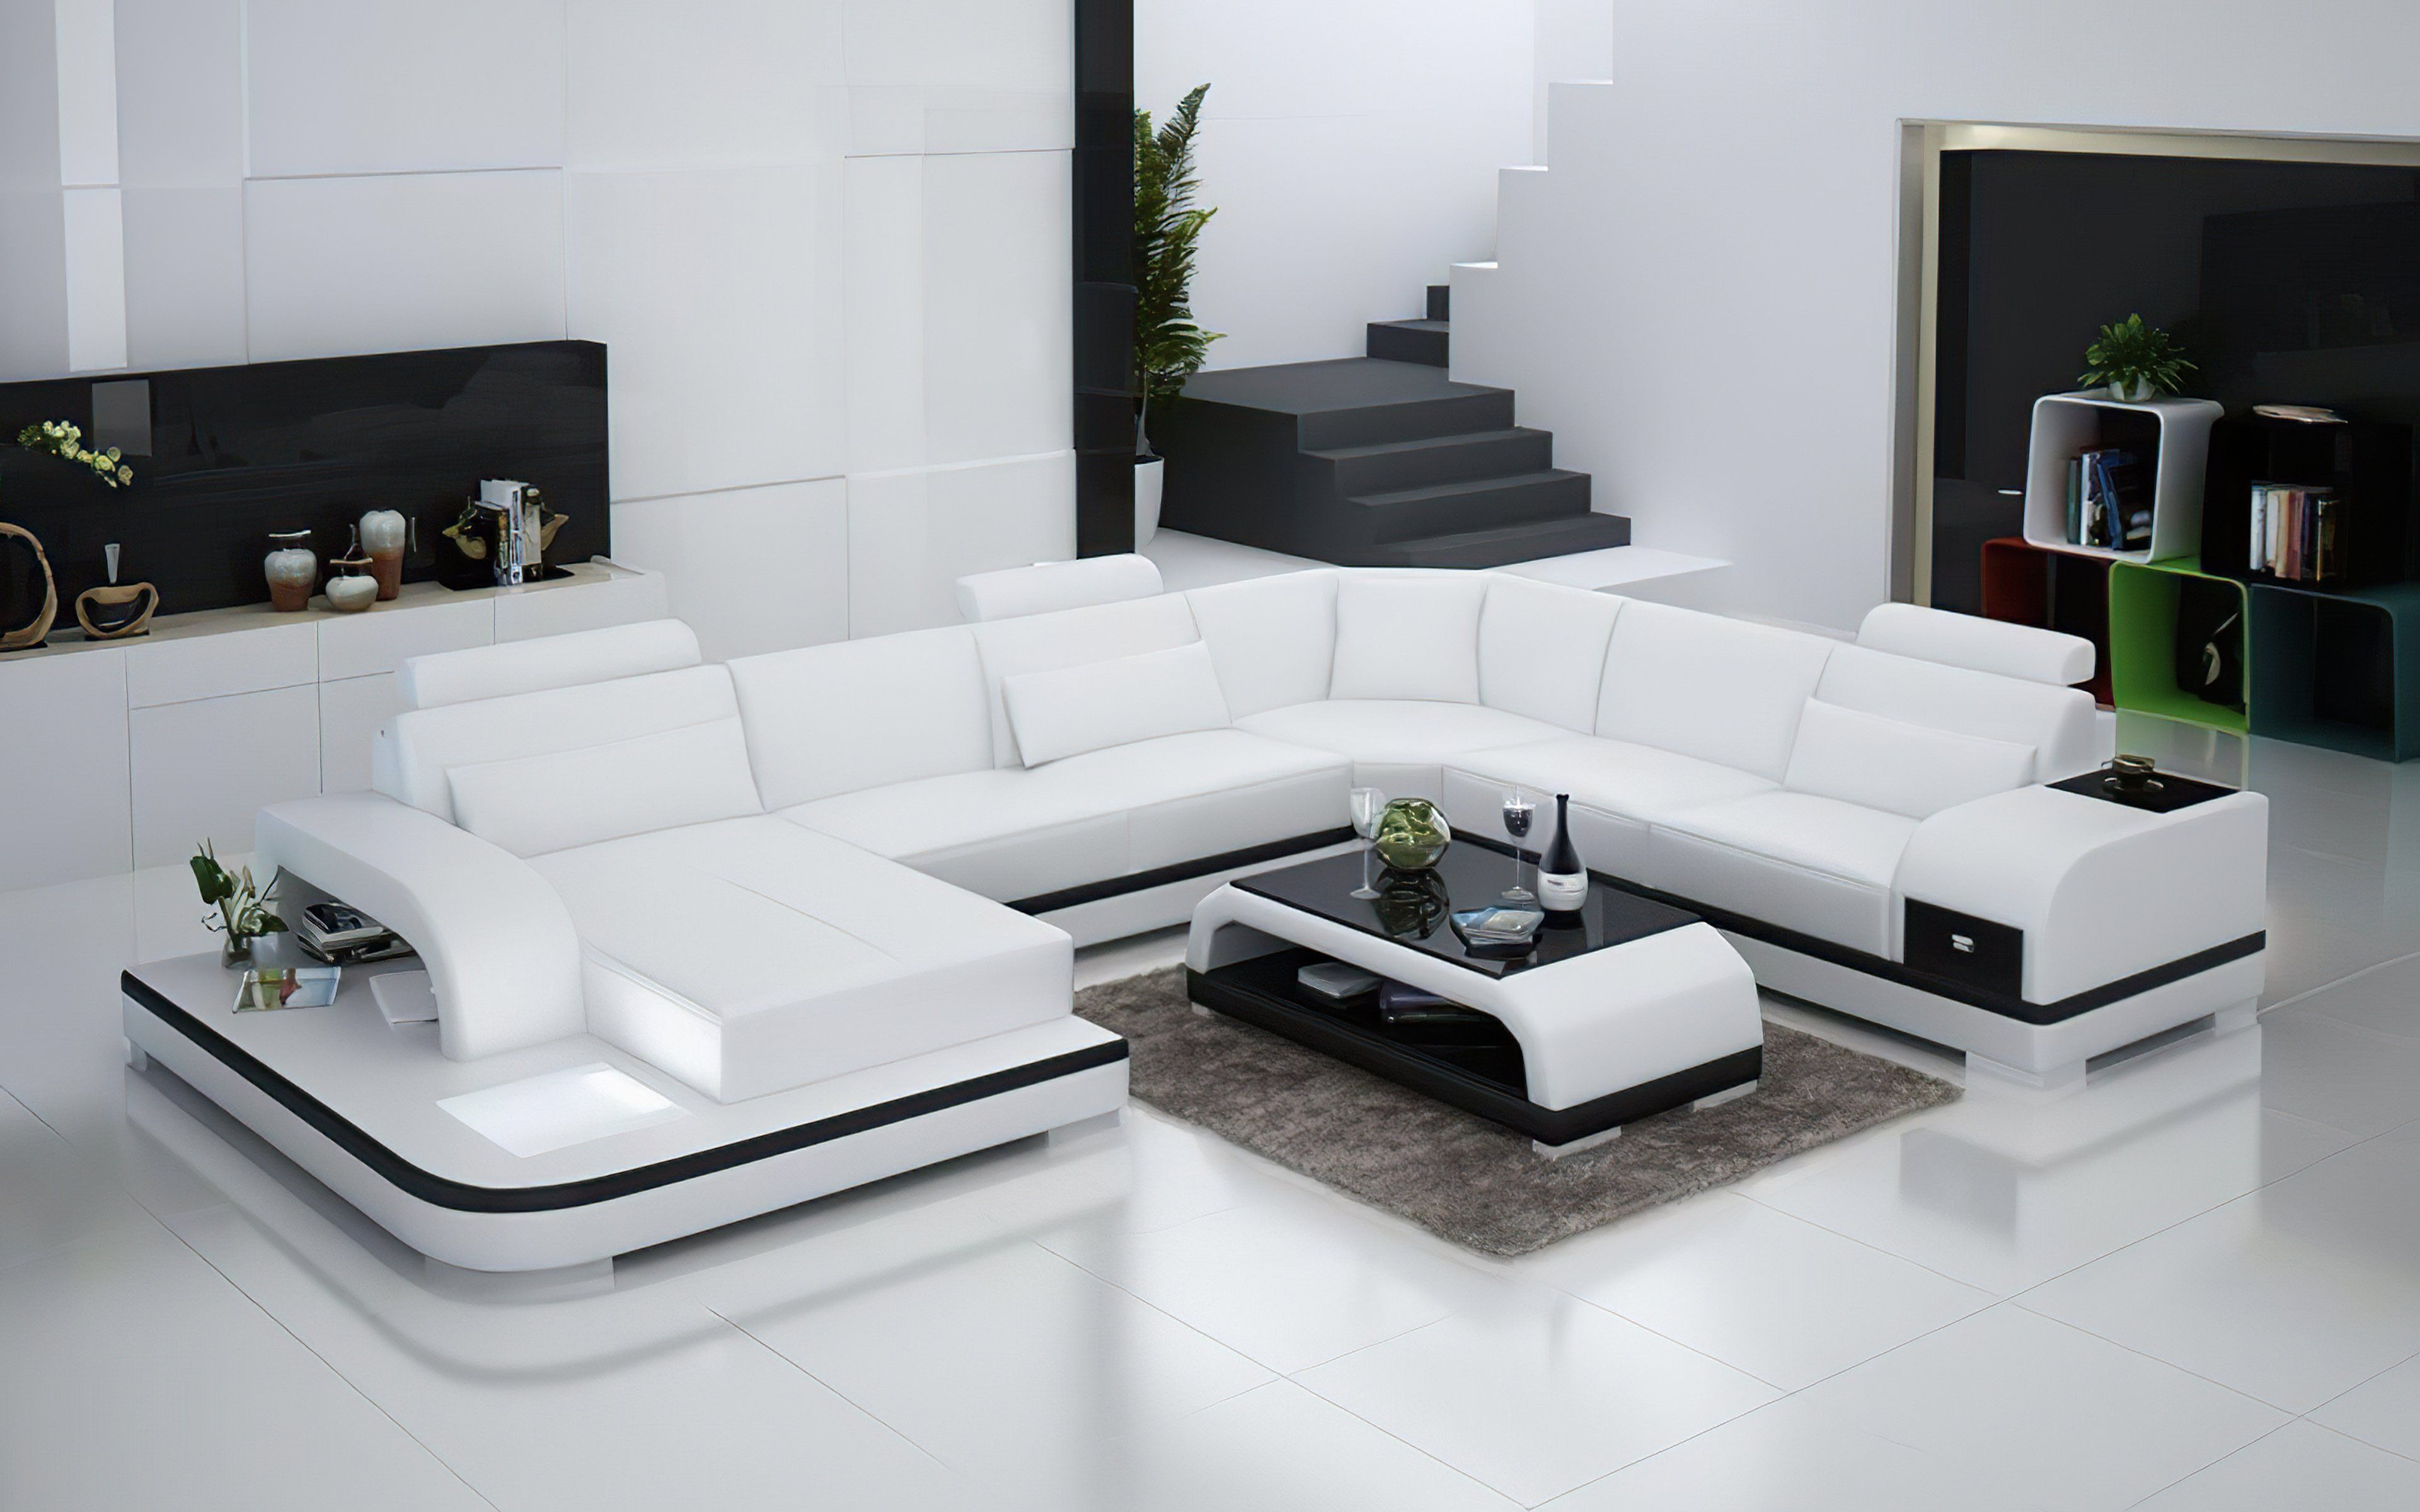 Everly Leather Sectional With Led Lights In 2021 Leather Sectional Modern Sofa Sectional Leather Corner Sofa